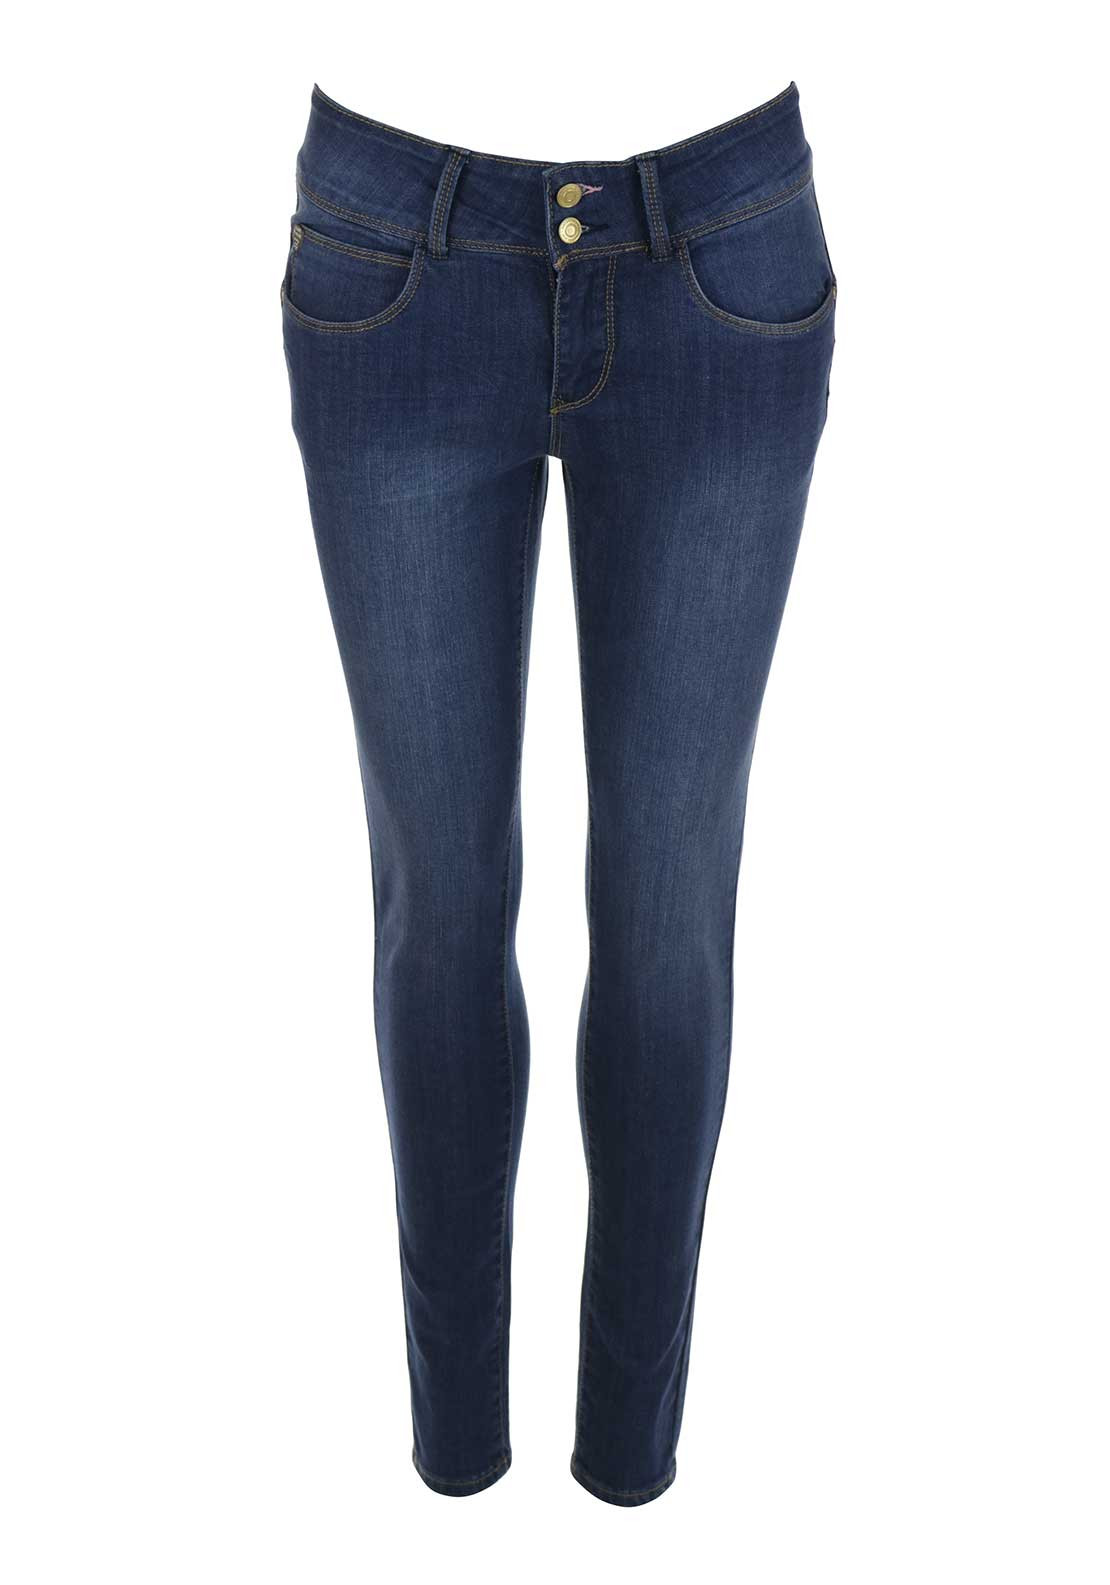 Rant & Rave Vivian Vintage Wash High Waist Skinny Jeans, Blue Denim